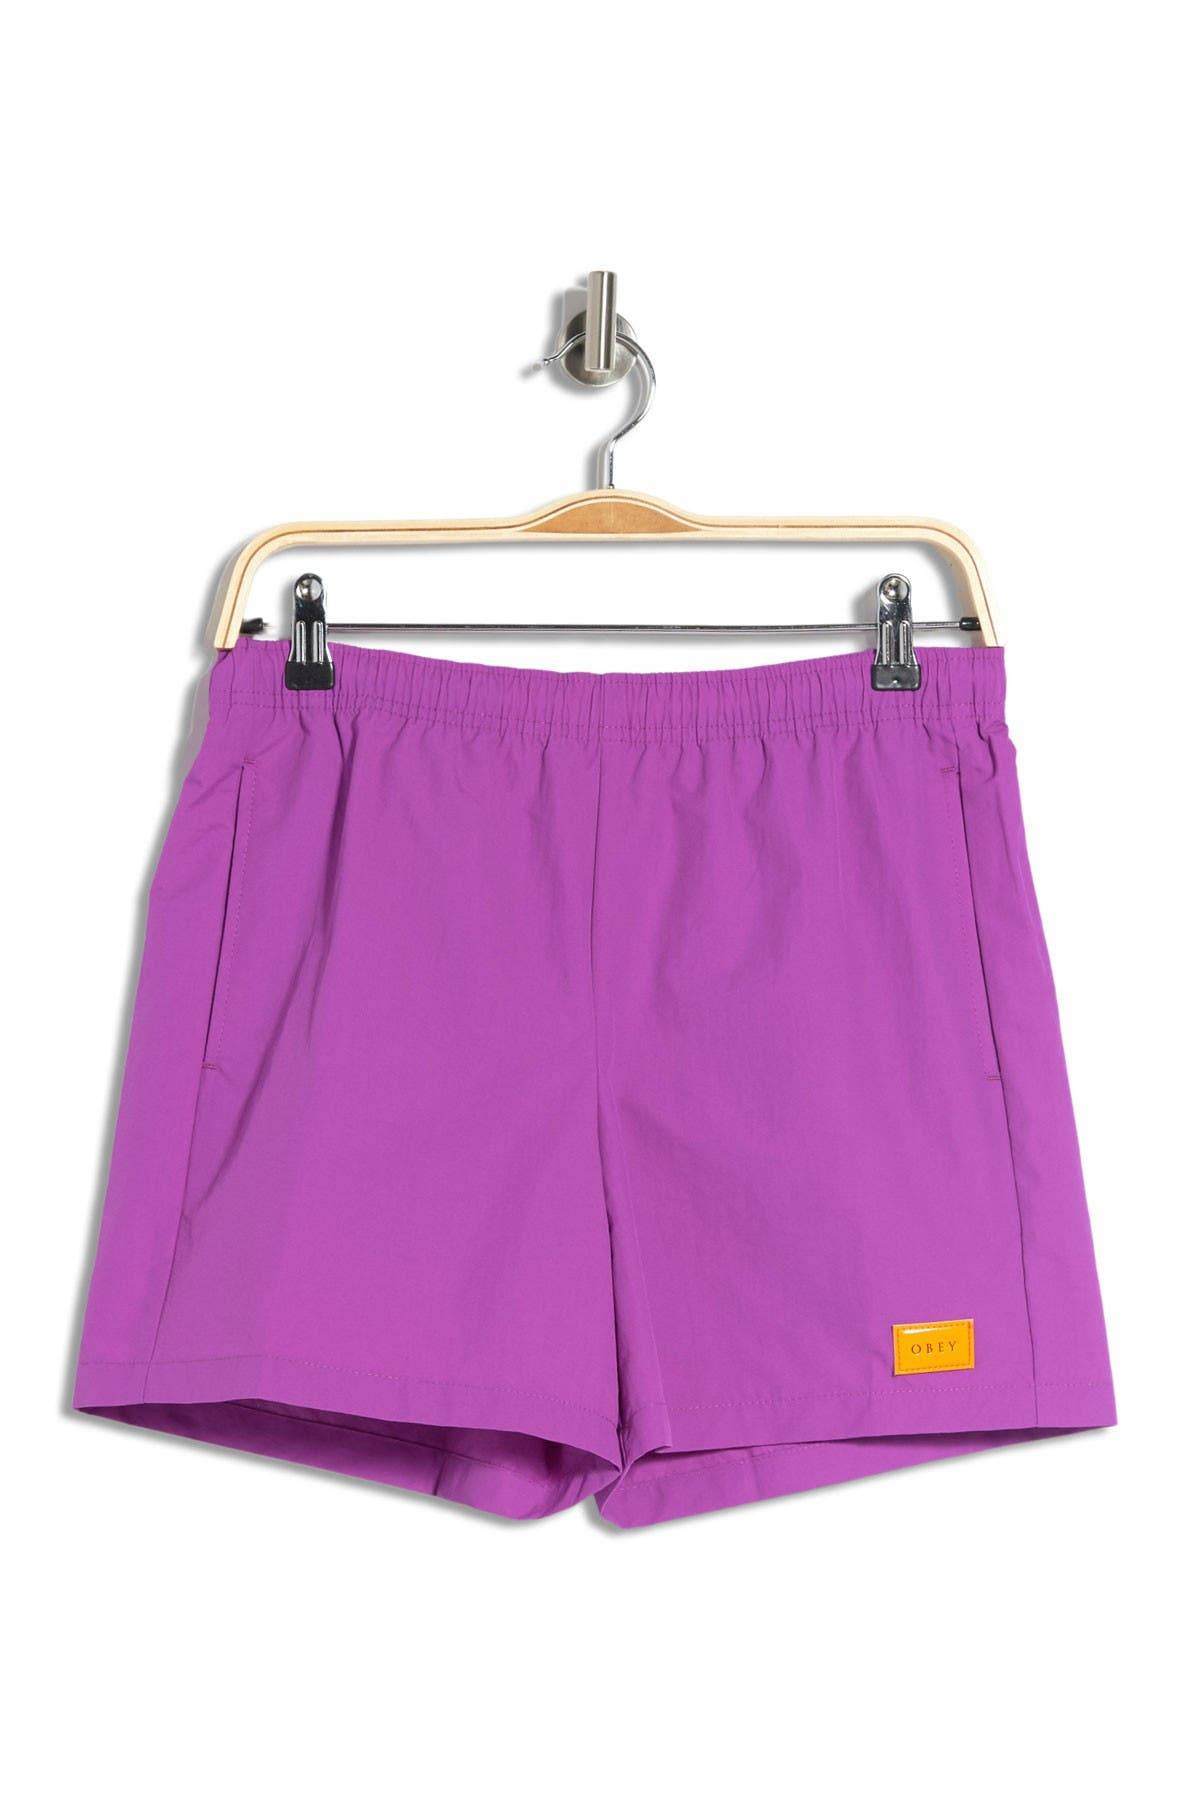 Image of Obey Rapids Shorts